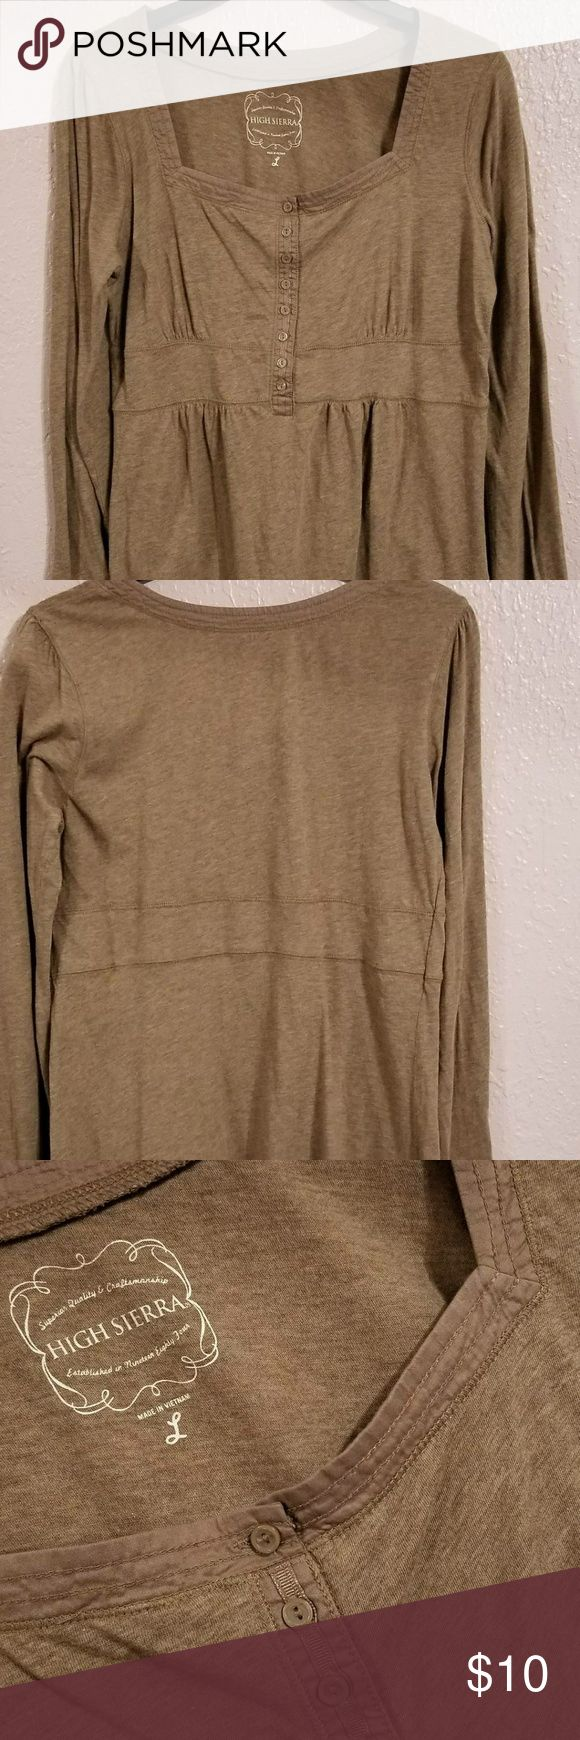 High Sierra Women blouse - Top, Brown, Long sleeve High Sierra Women Blouse (new without tags)   Size : Large  Sleeve: Long , 25 inches  Length: 27.5 inches  Armpit to Armpit: 18.5 inches  Waist : 17.5 inches  Fabric material: 100% Cotton High Sierra Tops Tees - Long Sleeve